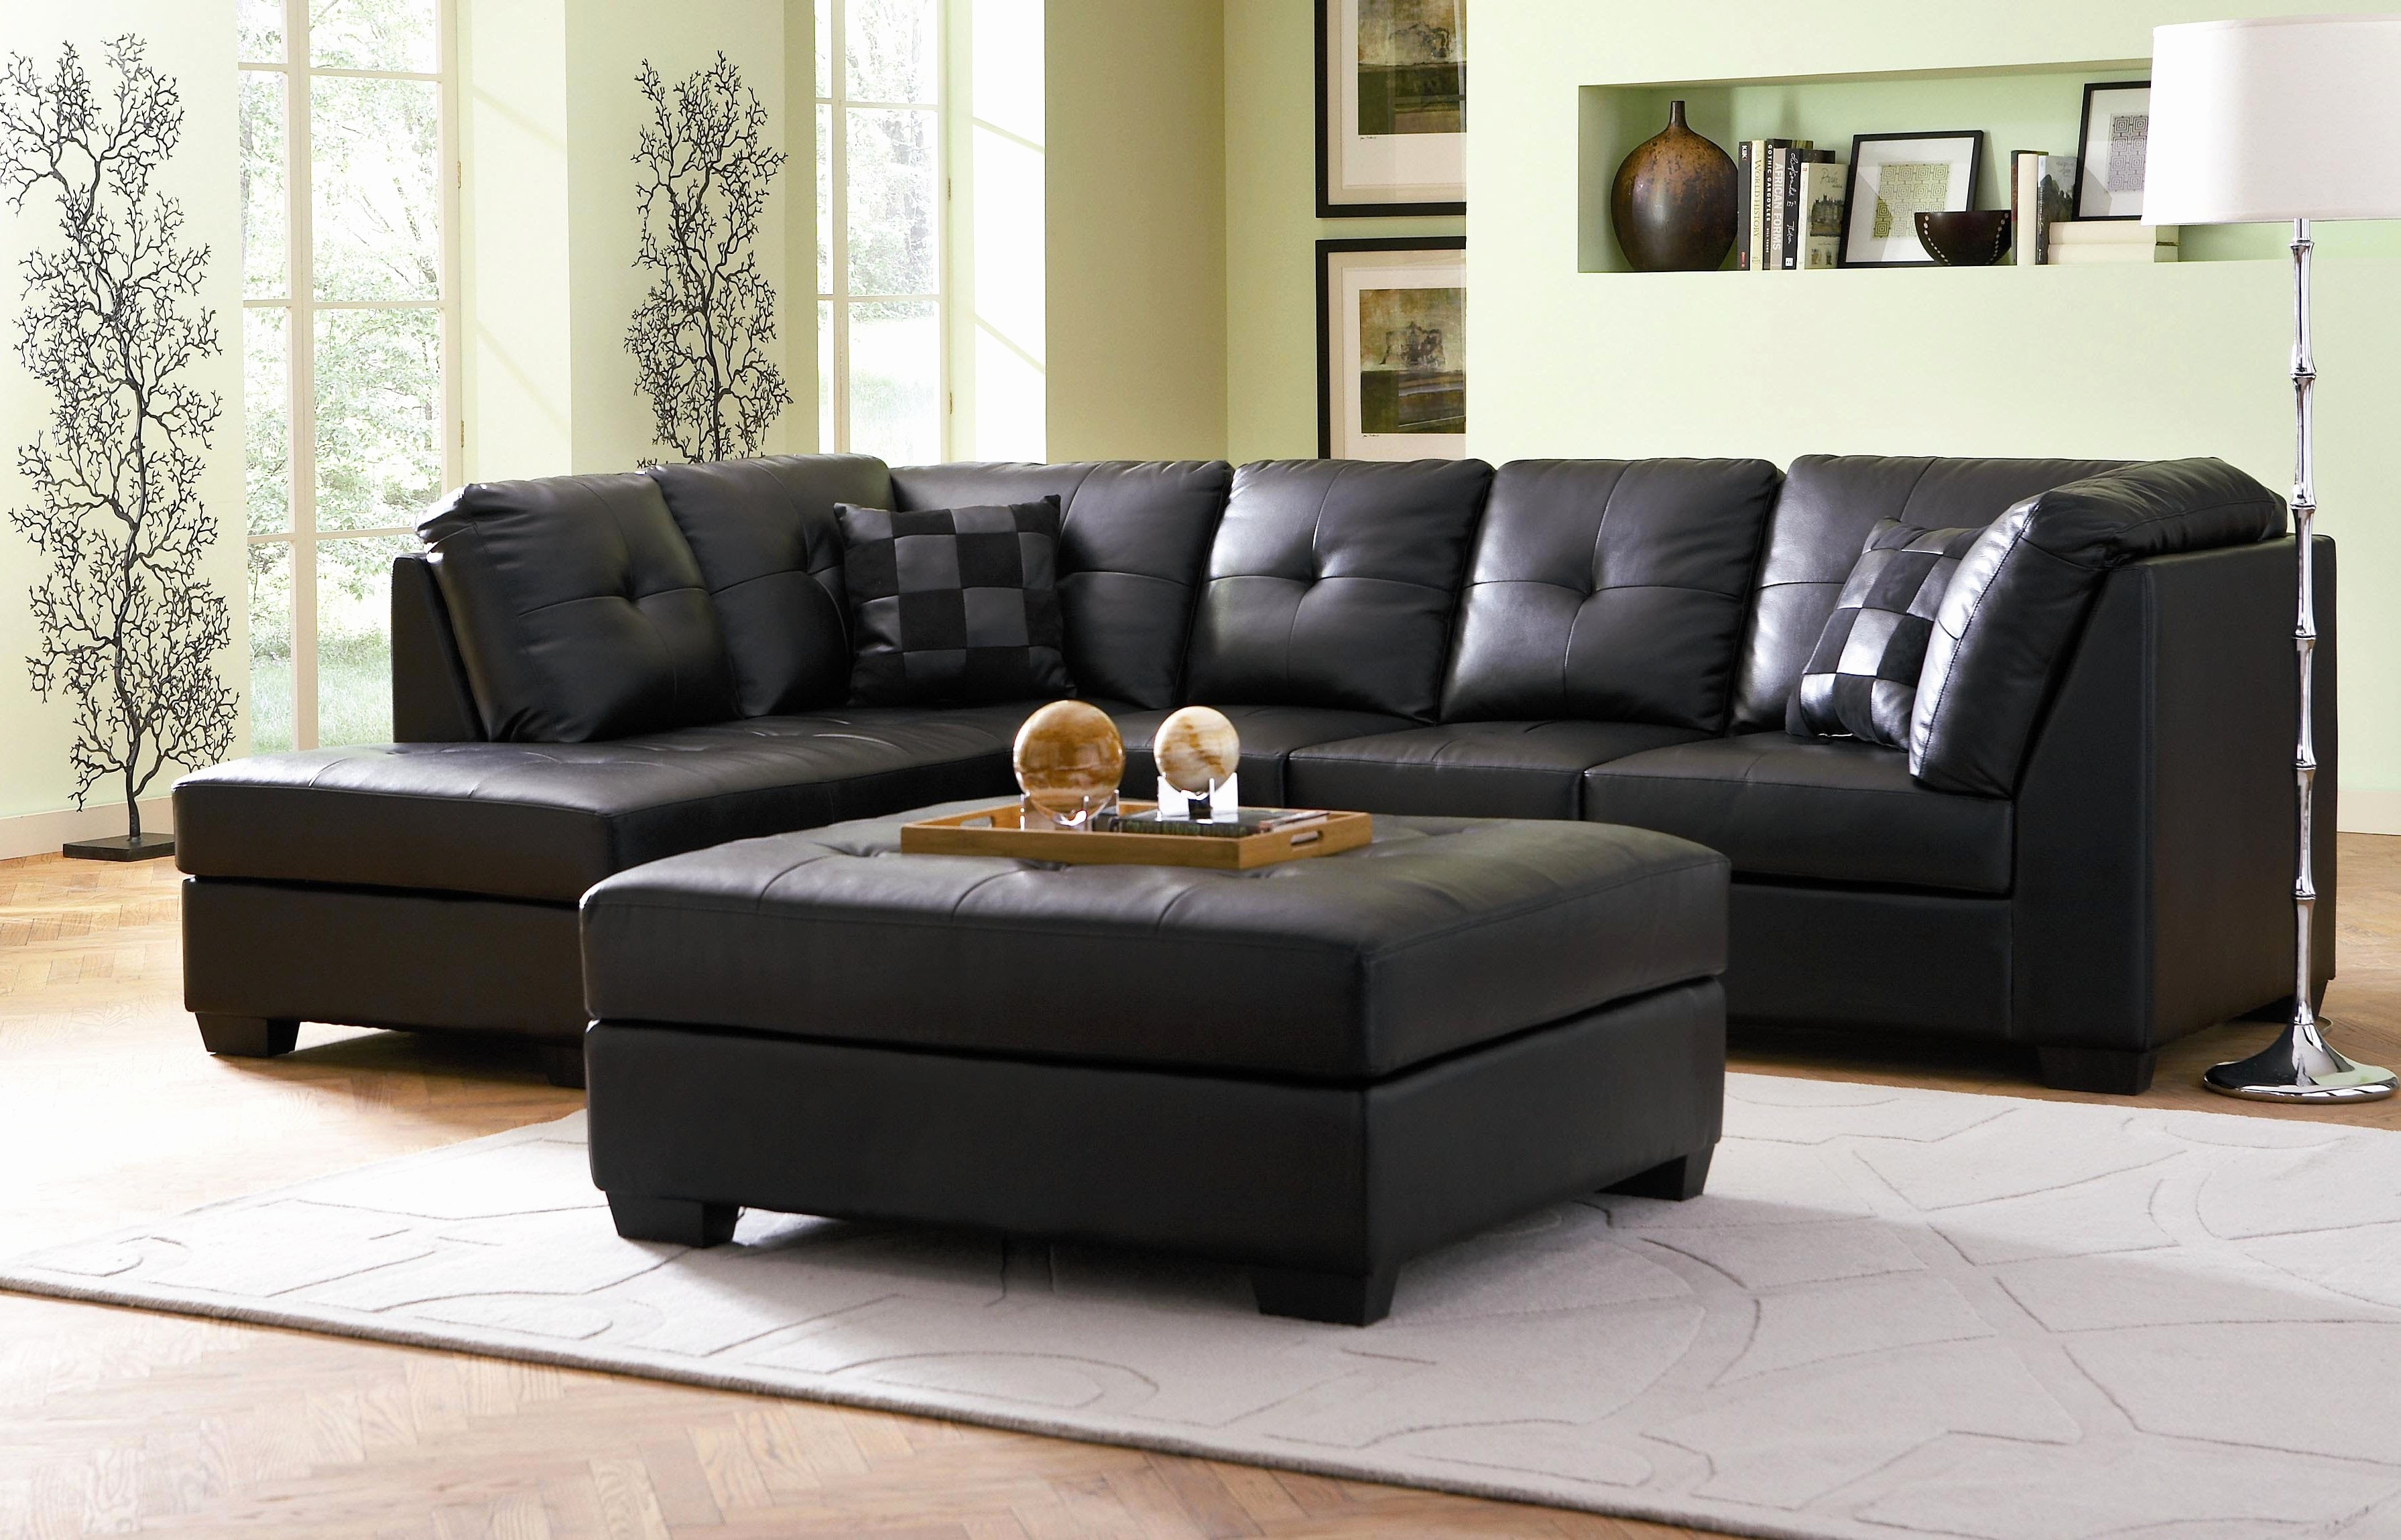 Square Sectional Sofa Good Cheap Sectional Sofas Sectional Sofas For With Sectional Sofas At Amazon (View 15 of 15)